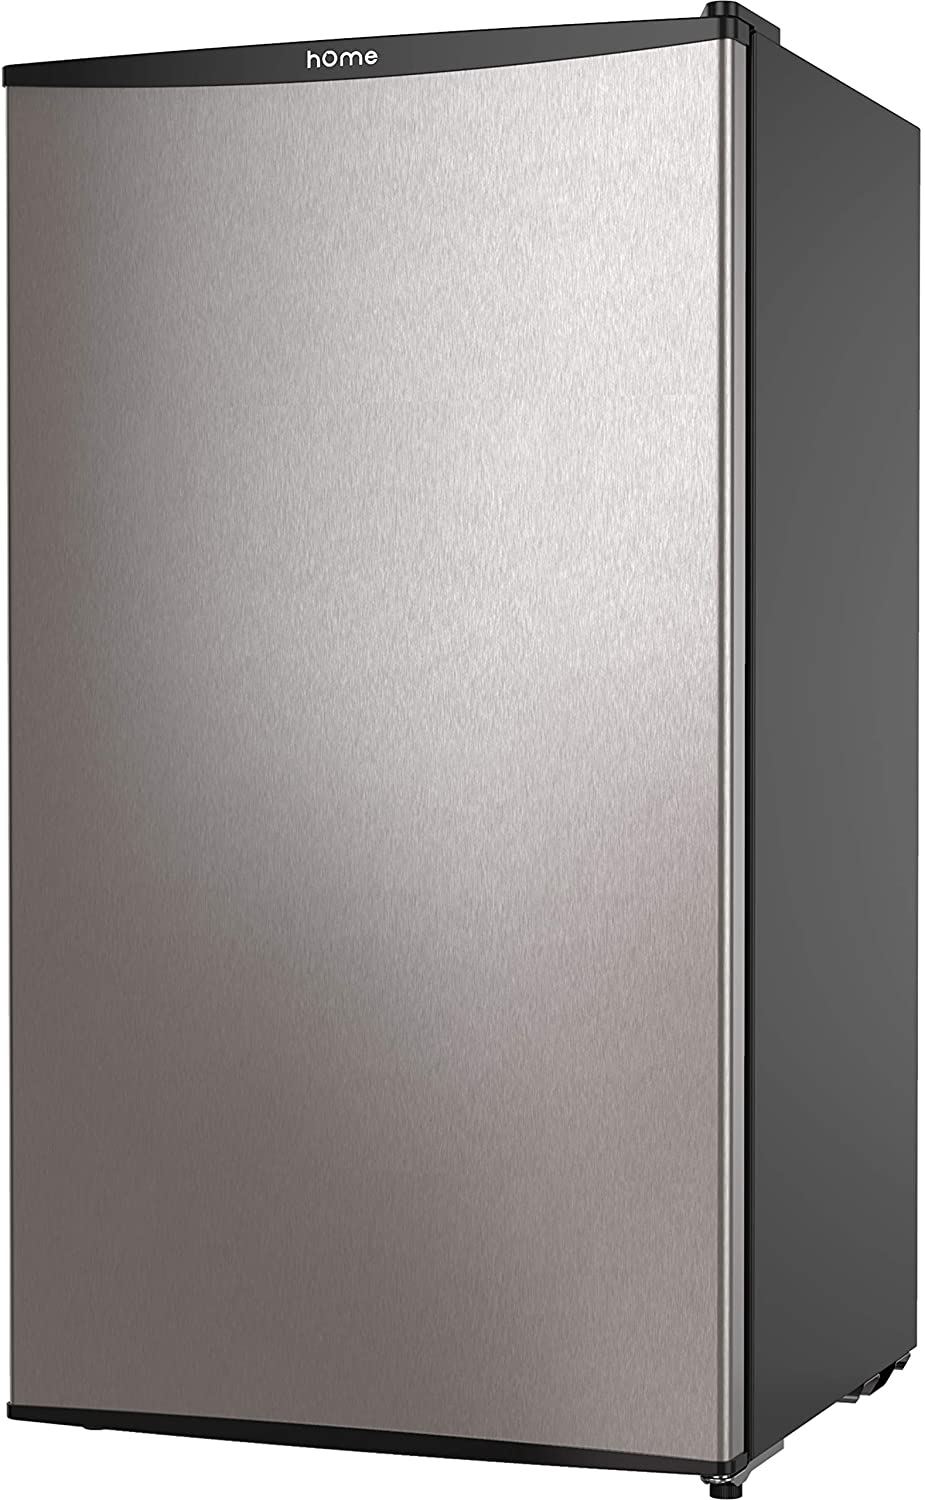 3.3 Cu Ft best hOmeLabs Best Little Tiny Freezer Fridge Under Lower Price.